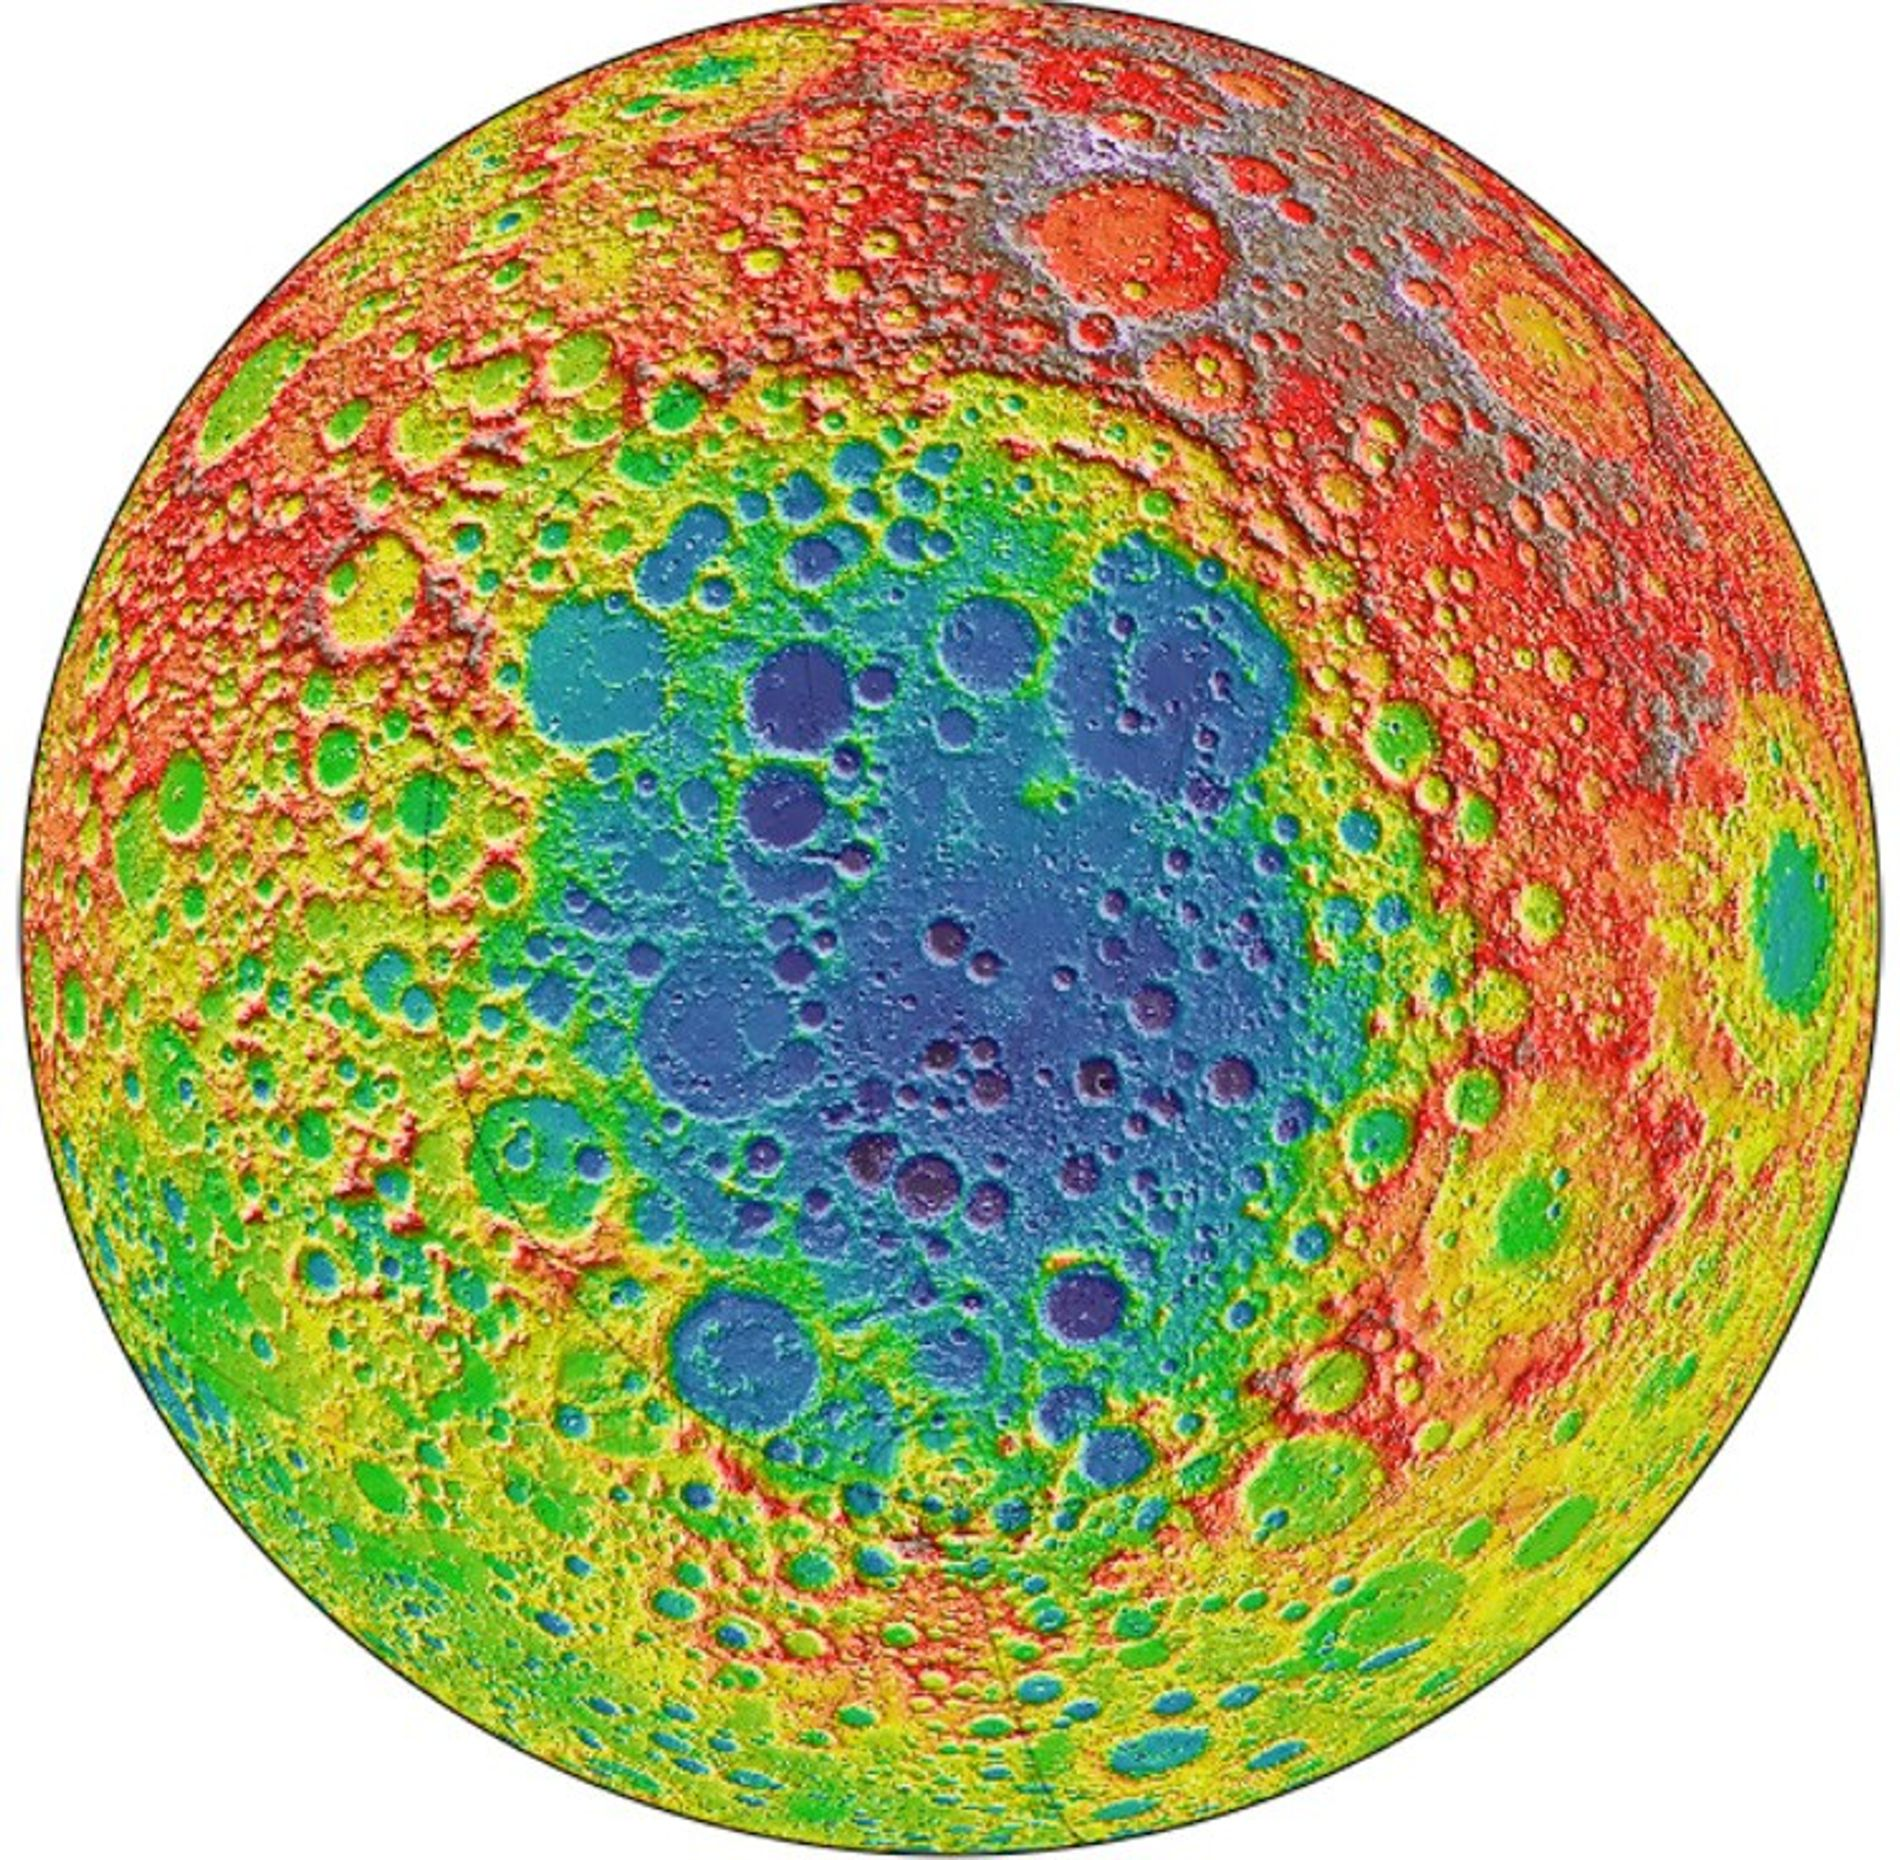 This image from NASA's Lunar Reconnaissance Orbiter centers on the South Pole-Aitken basin, the largest impact ...